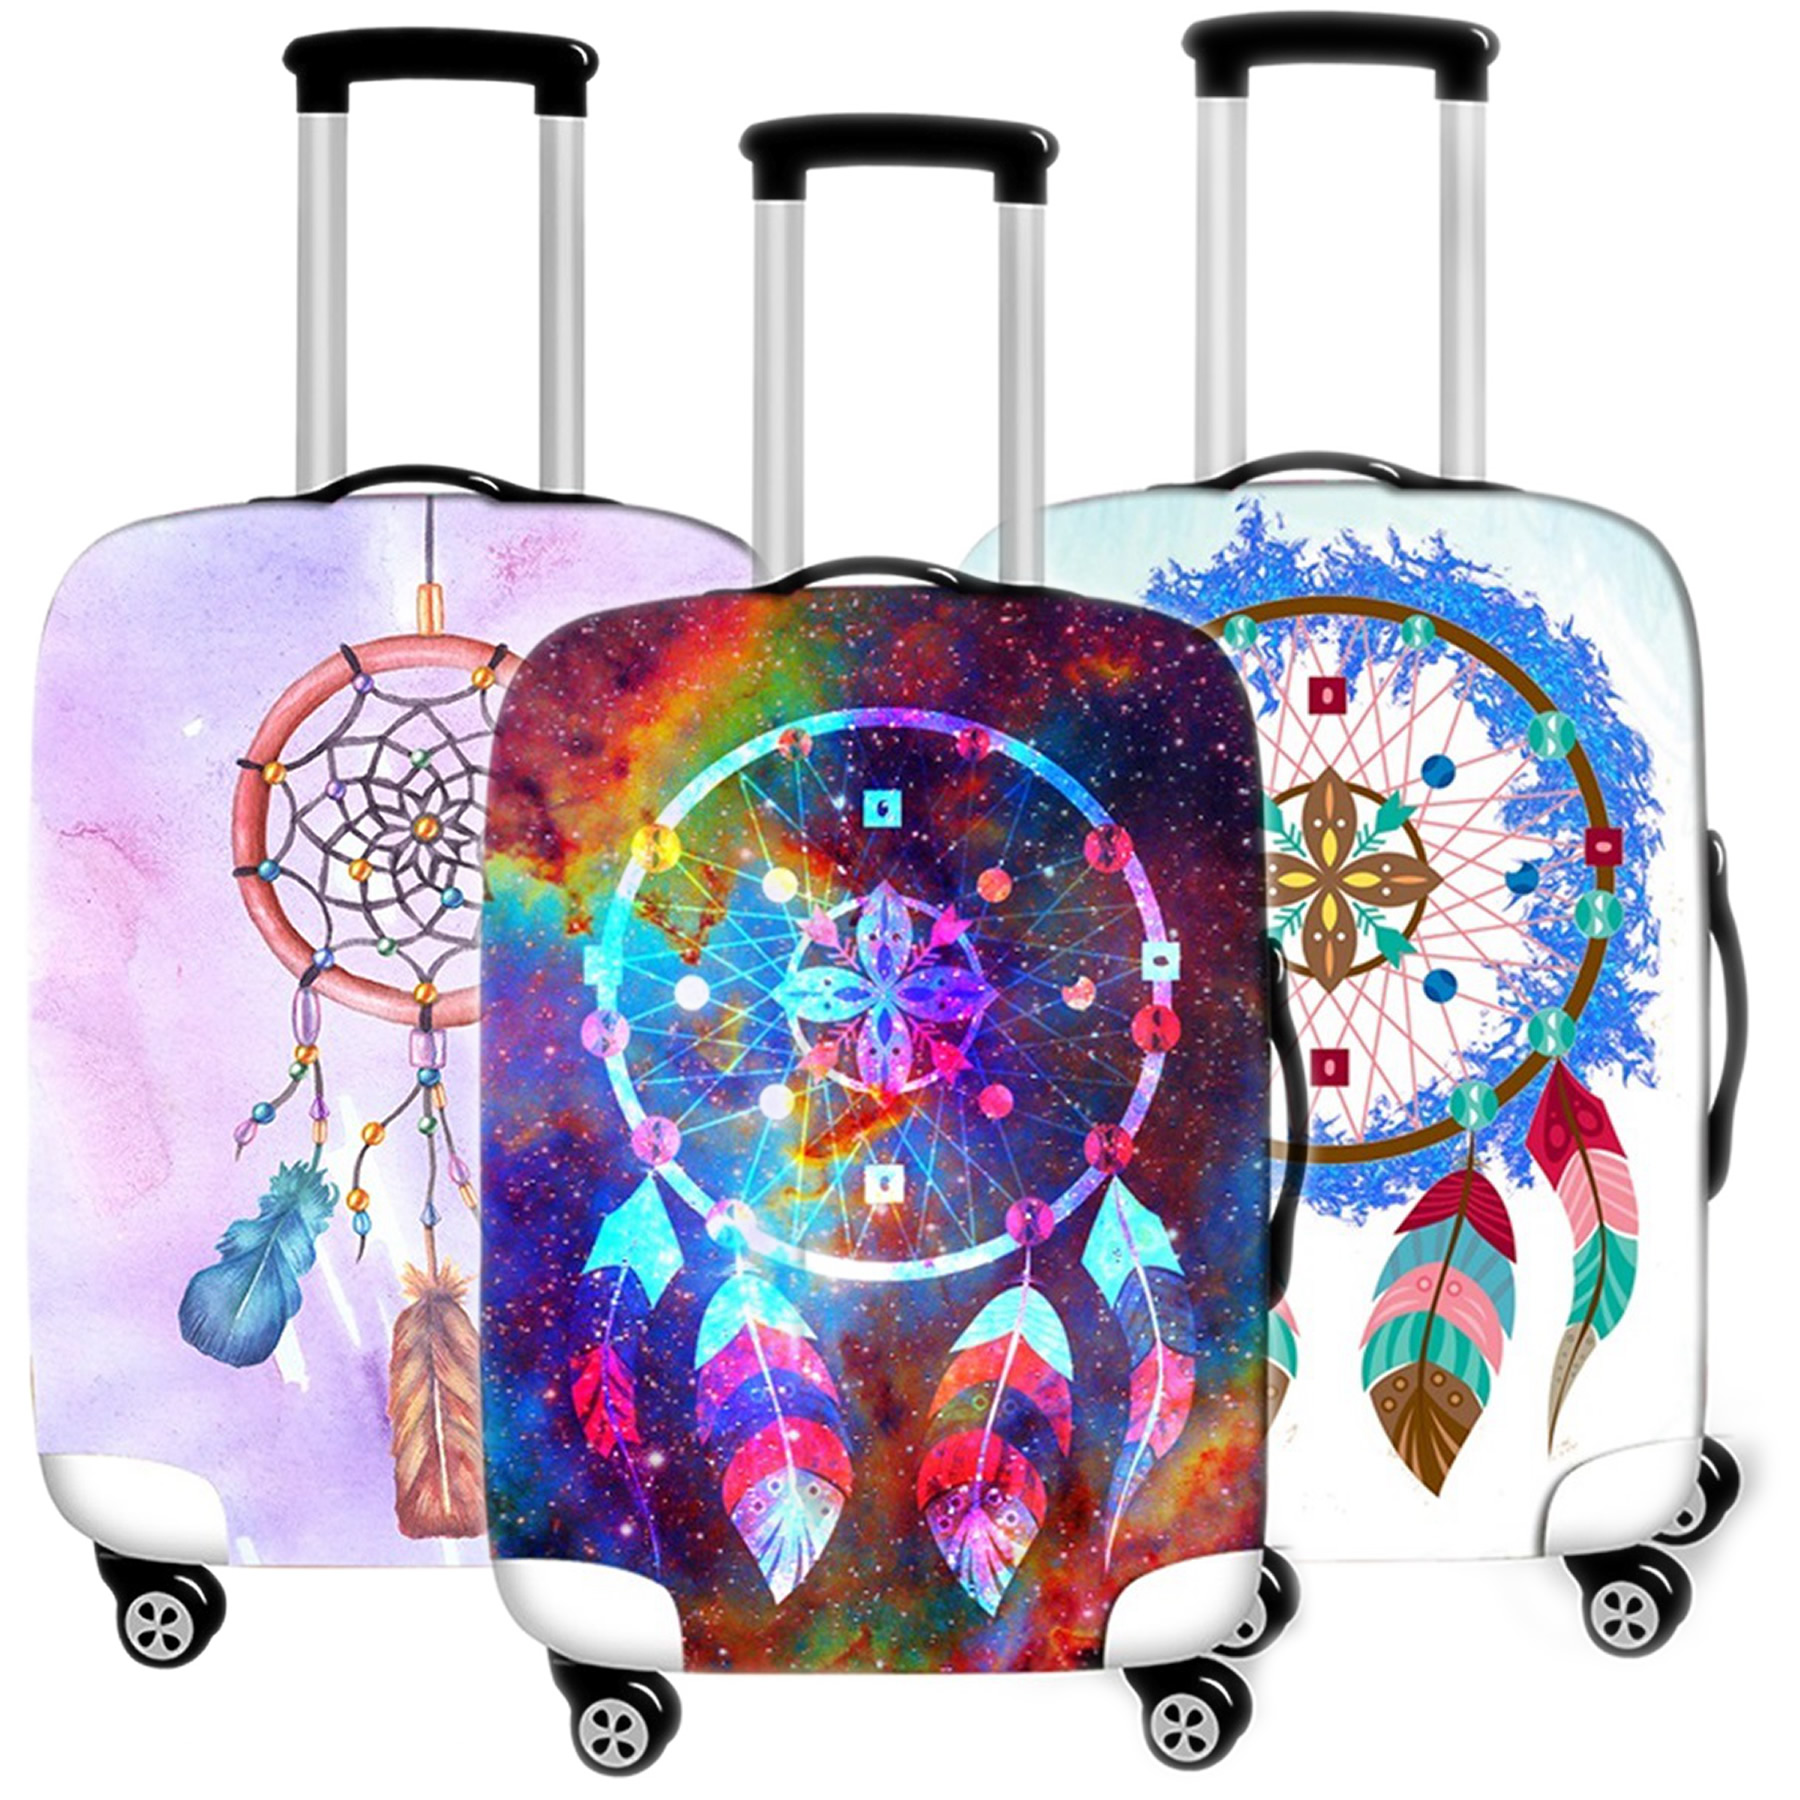 Aeolian Bells Luggage Cover Case Protective Travel Accessories Waterproof Thicken Elastic Suitcase Trunk Case 18-32 Inch XL